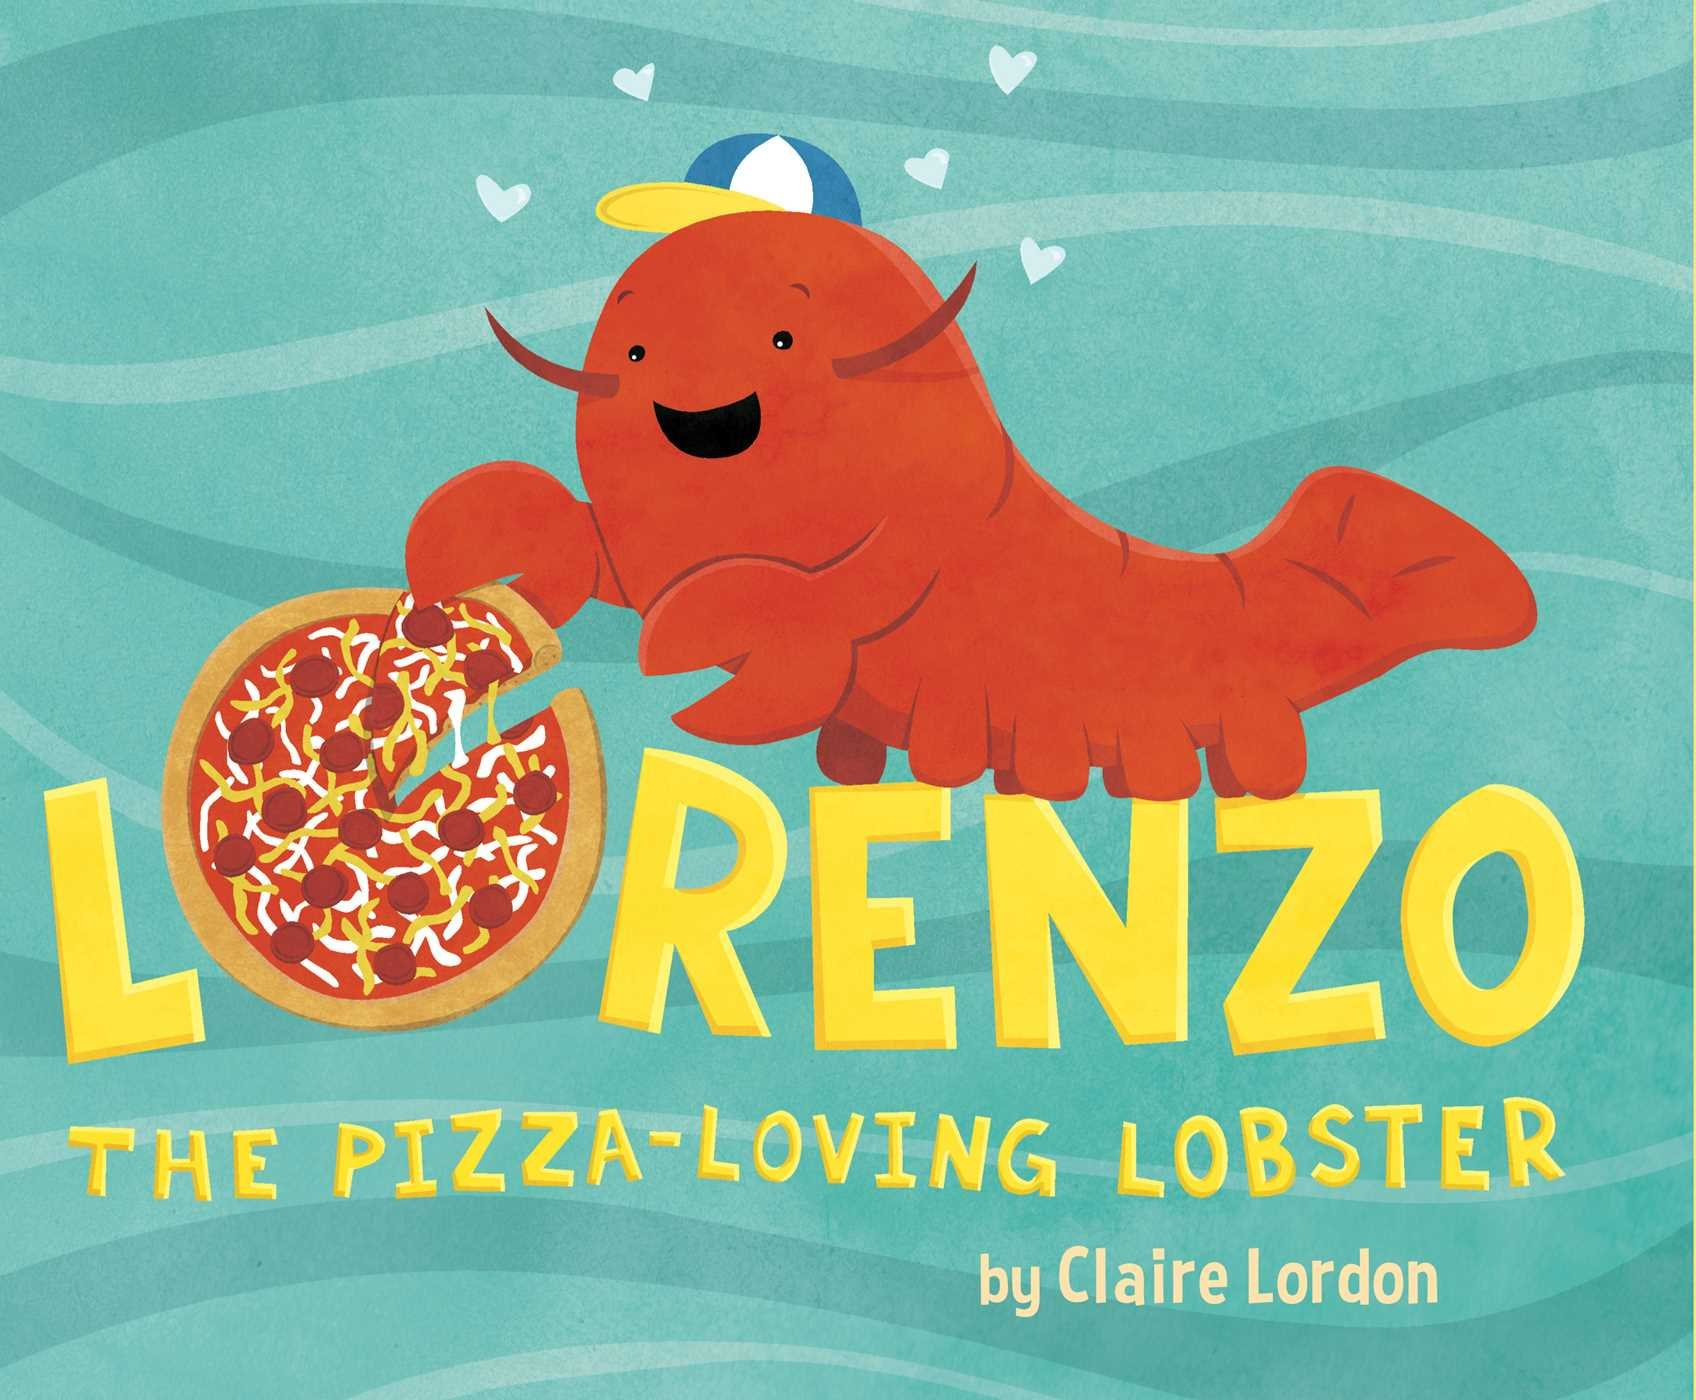 Lorenzo the Pizza-Loving Lobster by Claire Lordon